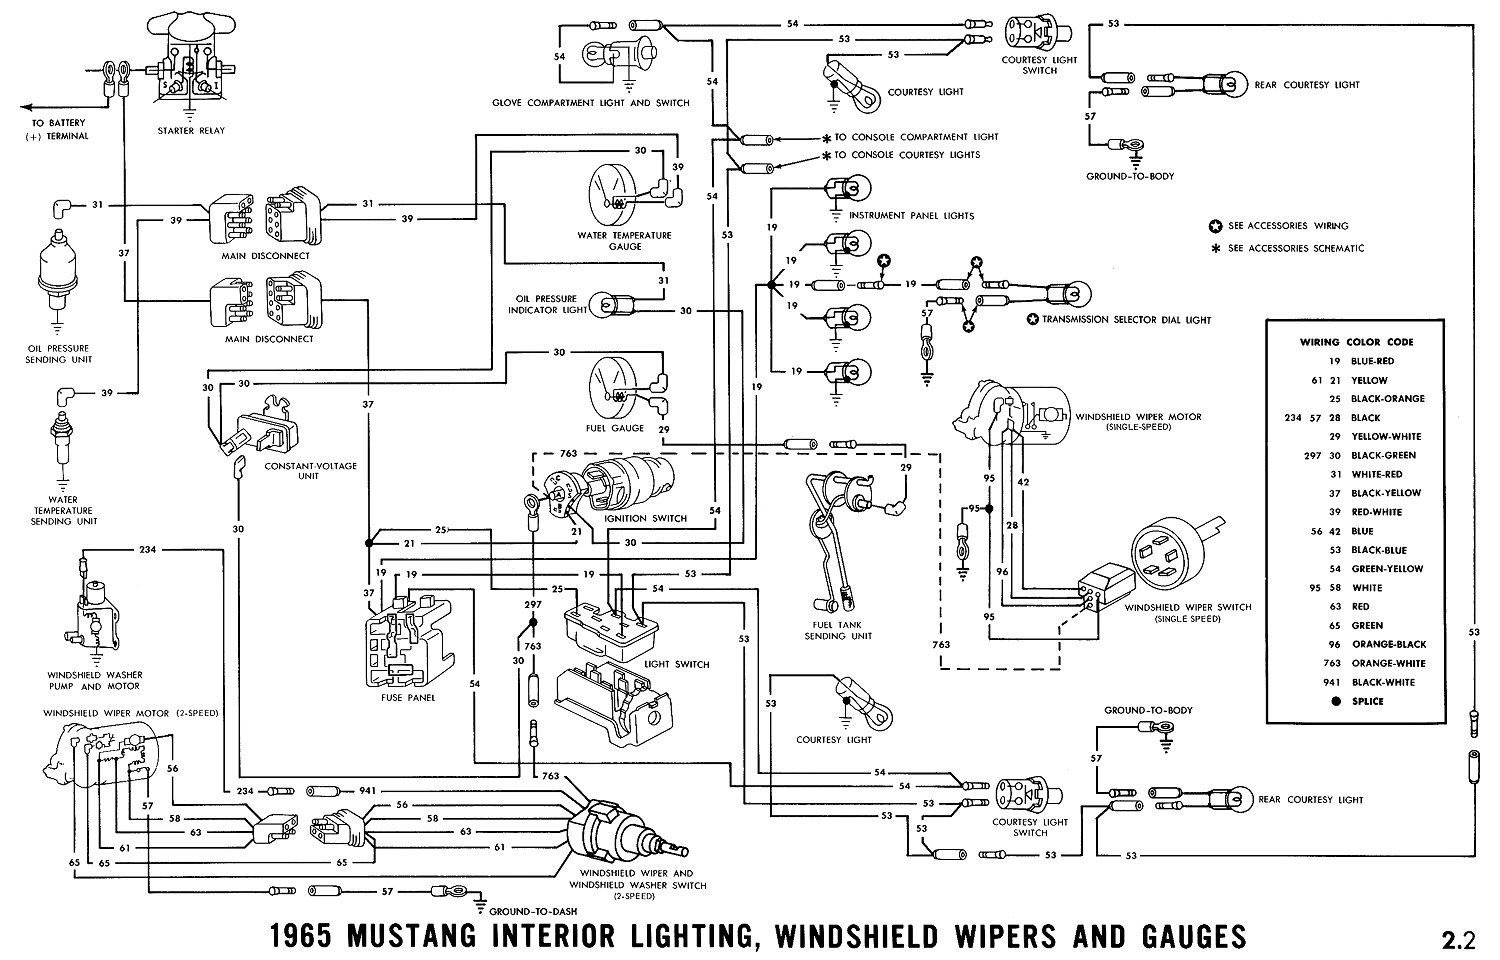 1965g 2014 mustang wiring diagram on 2014 download wirning diagrams 1989 mustang wiring diagram at bayanpartner.co